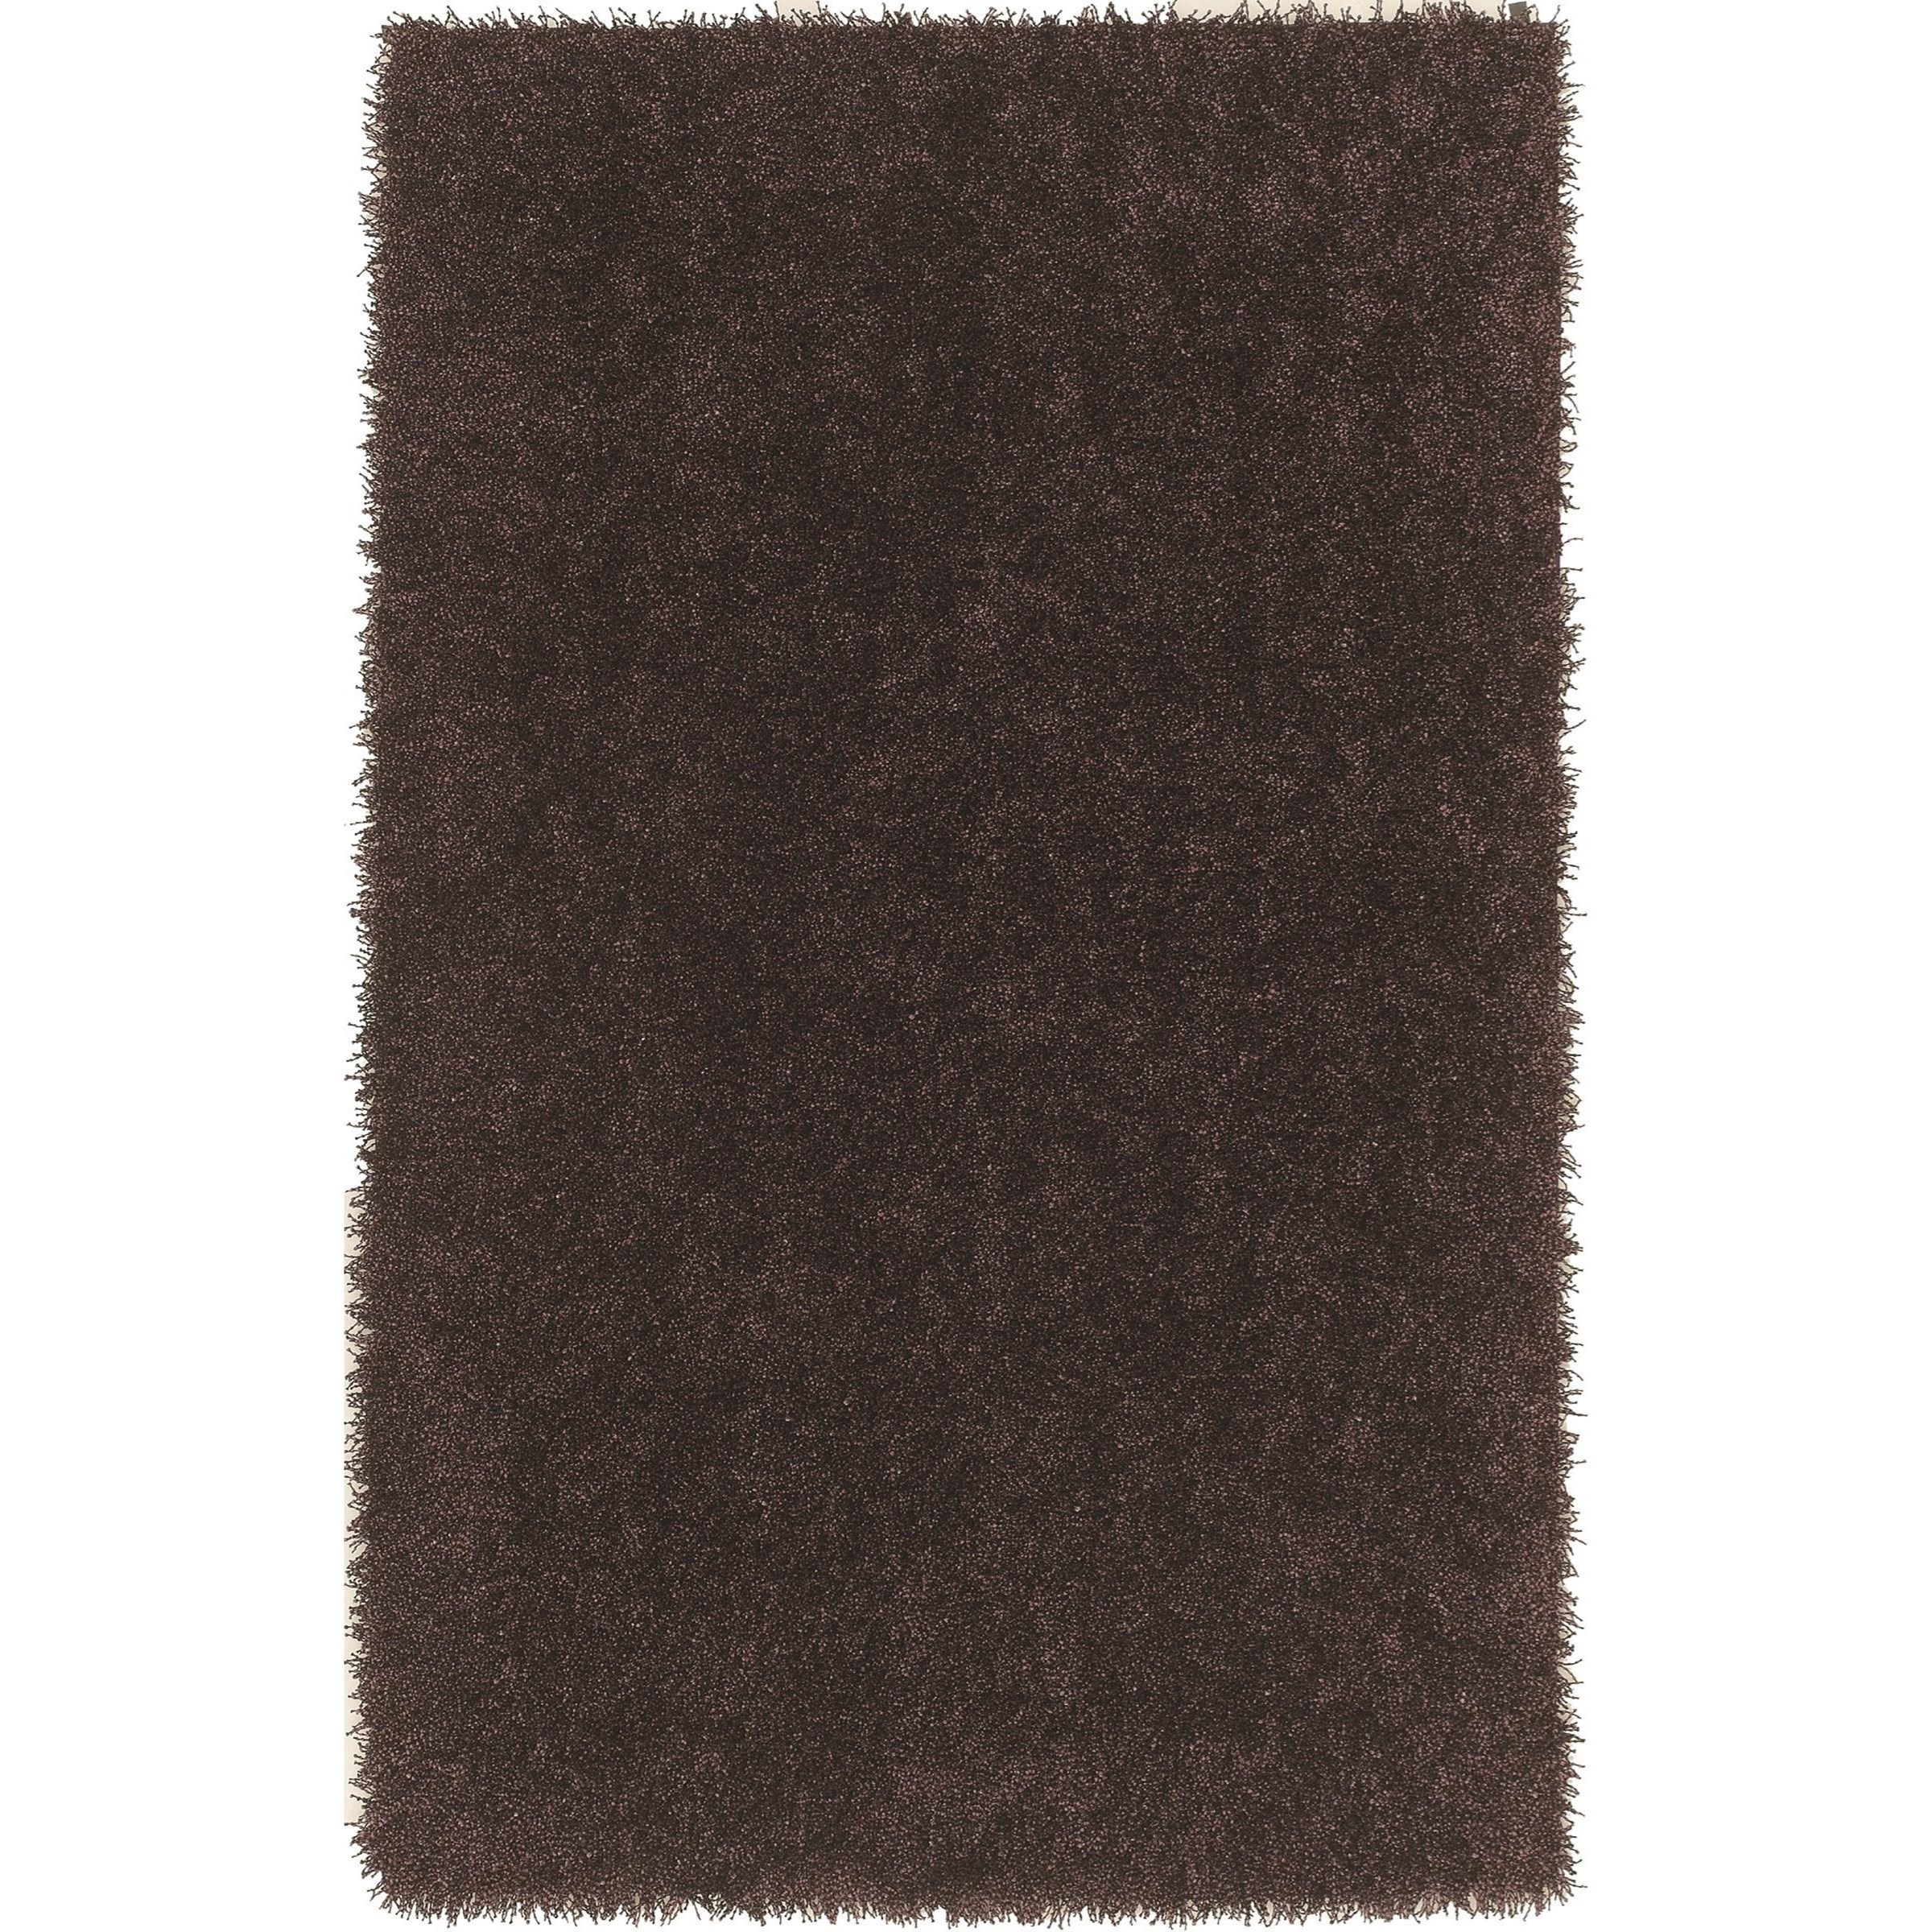 Dalyn Belize Plum 8'X10' Rug - Item Number: BZ100PL8X10